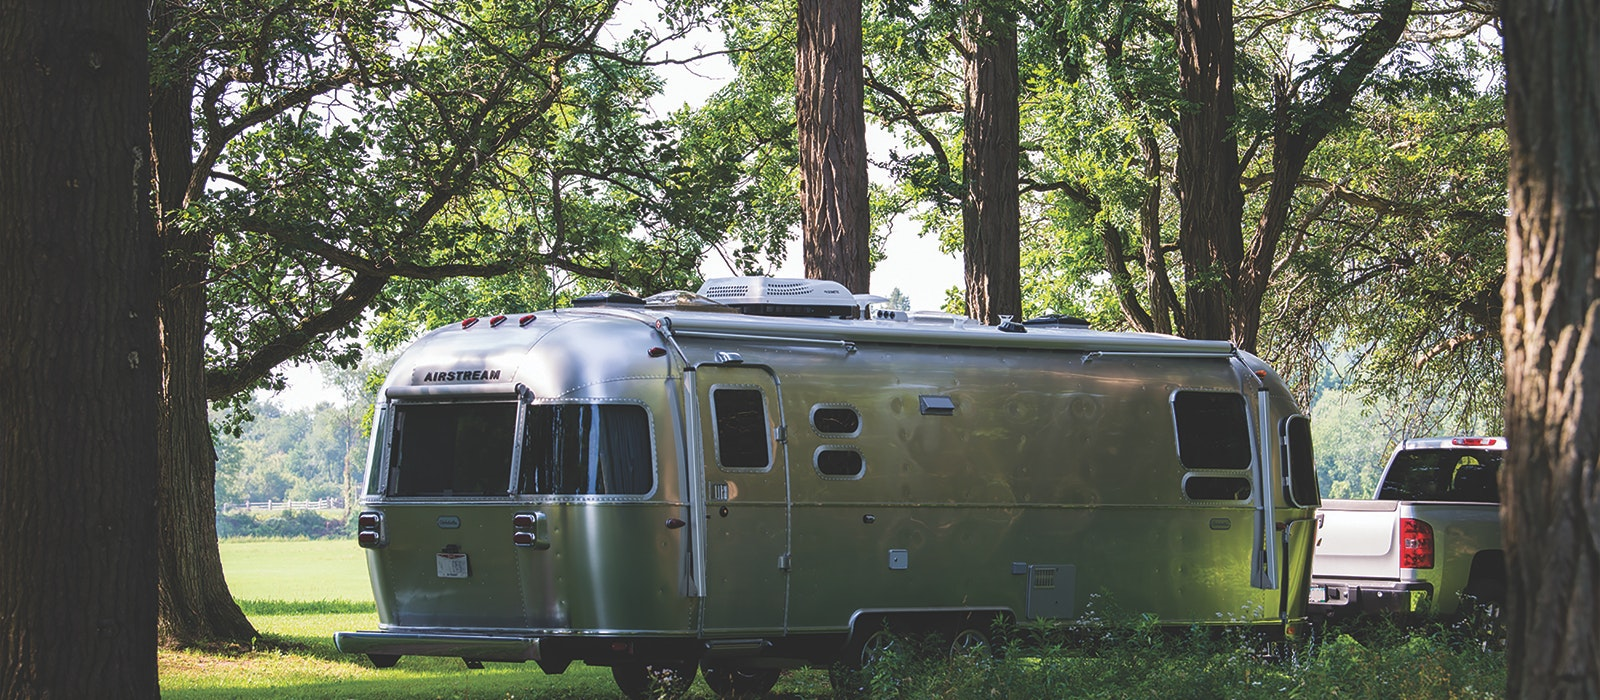 Original airmkt 202018 20globetrotter airstream randy if 0010 20print.jpg?1529446717?ixlib=rails 0.3